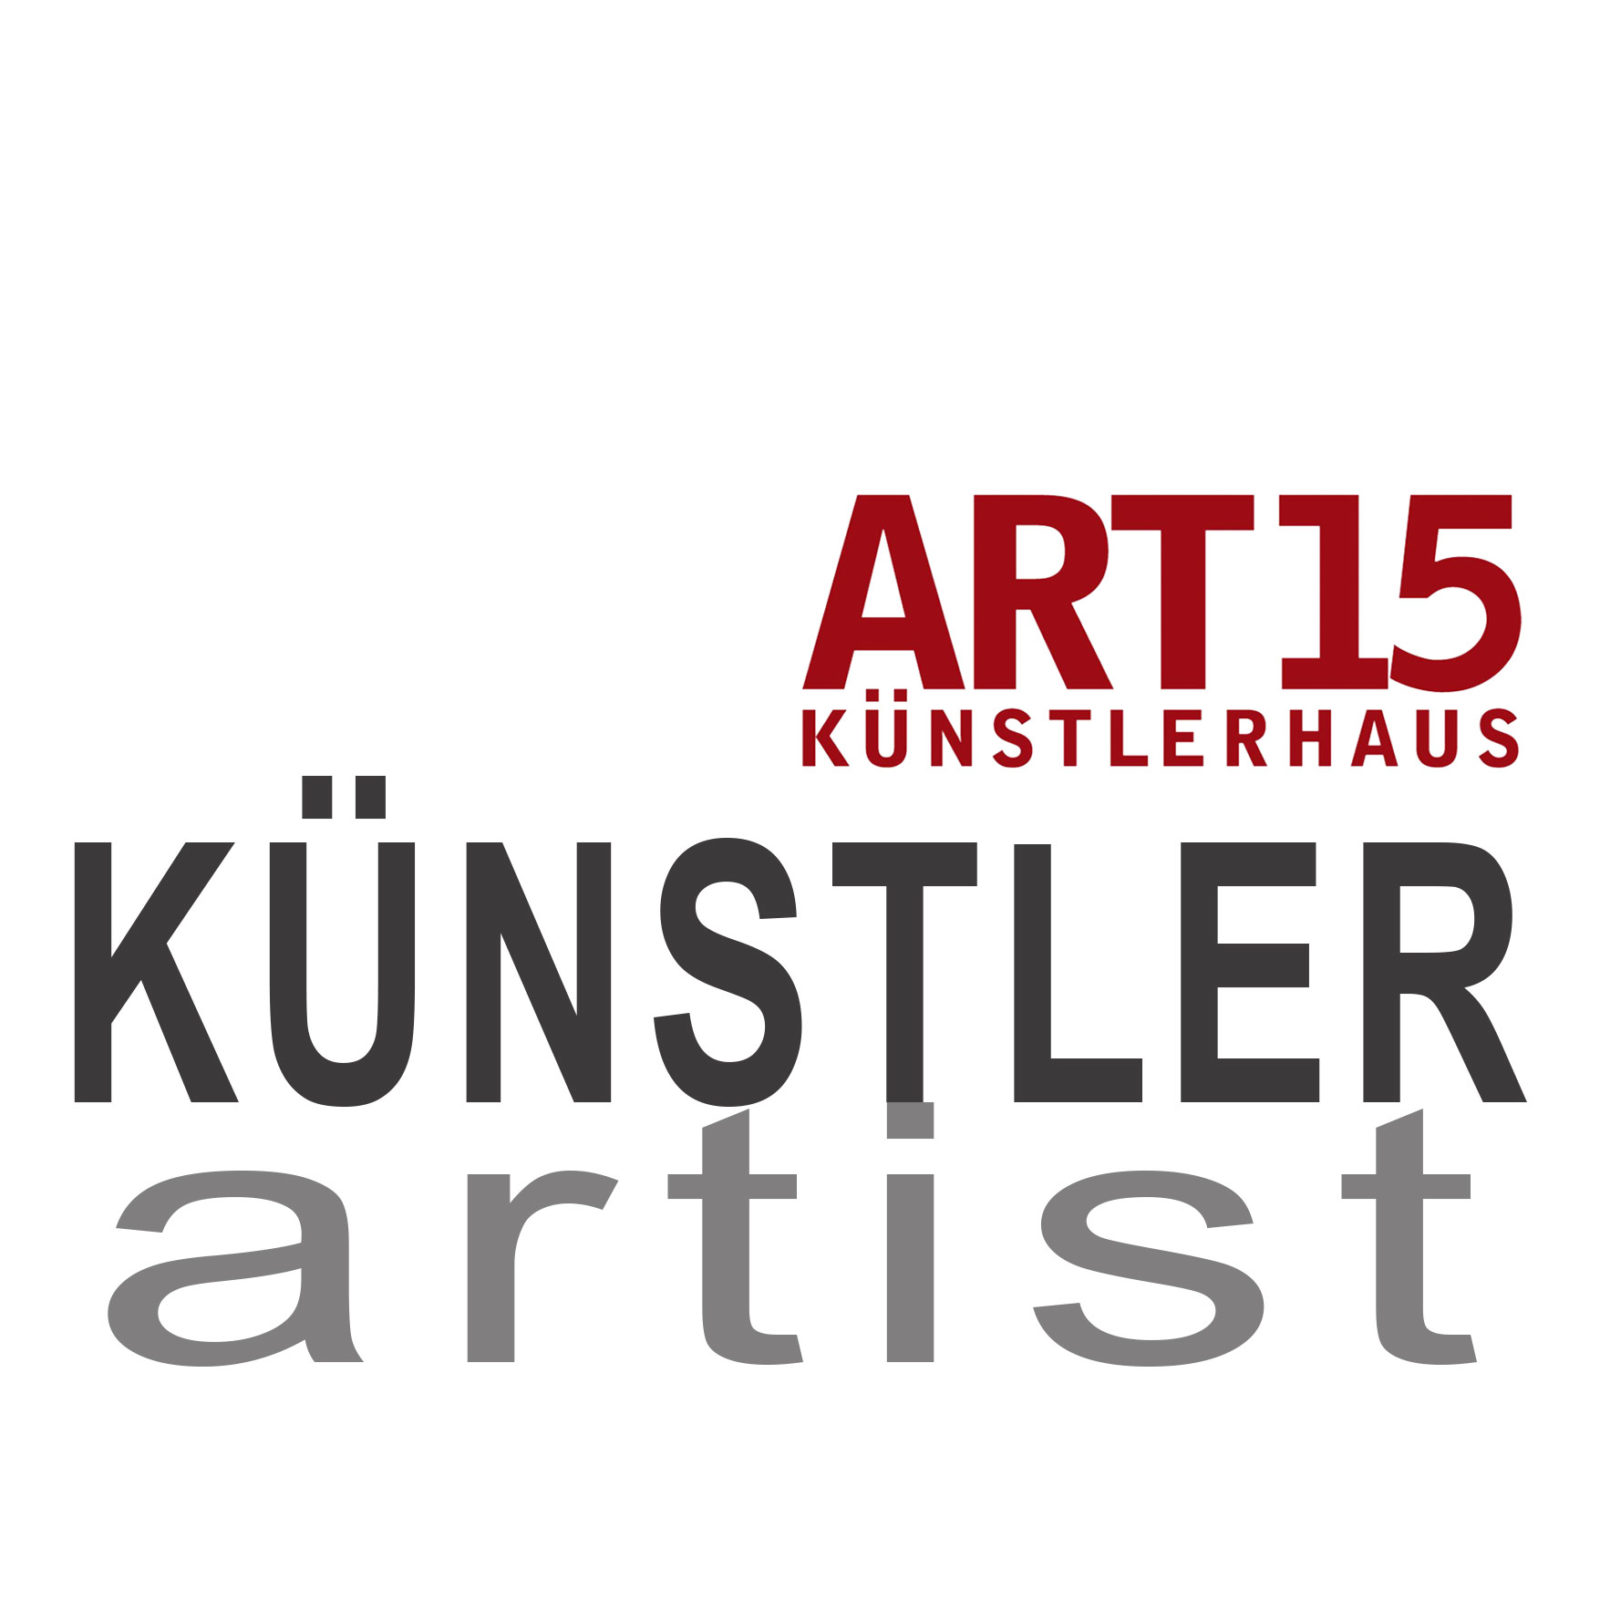 BURKHARD TEGELER *SKULPTUREN & OBJEKTE ART15 LOGO WORDS 1